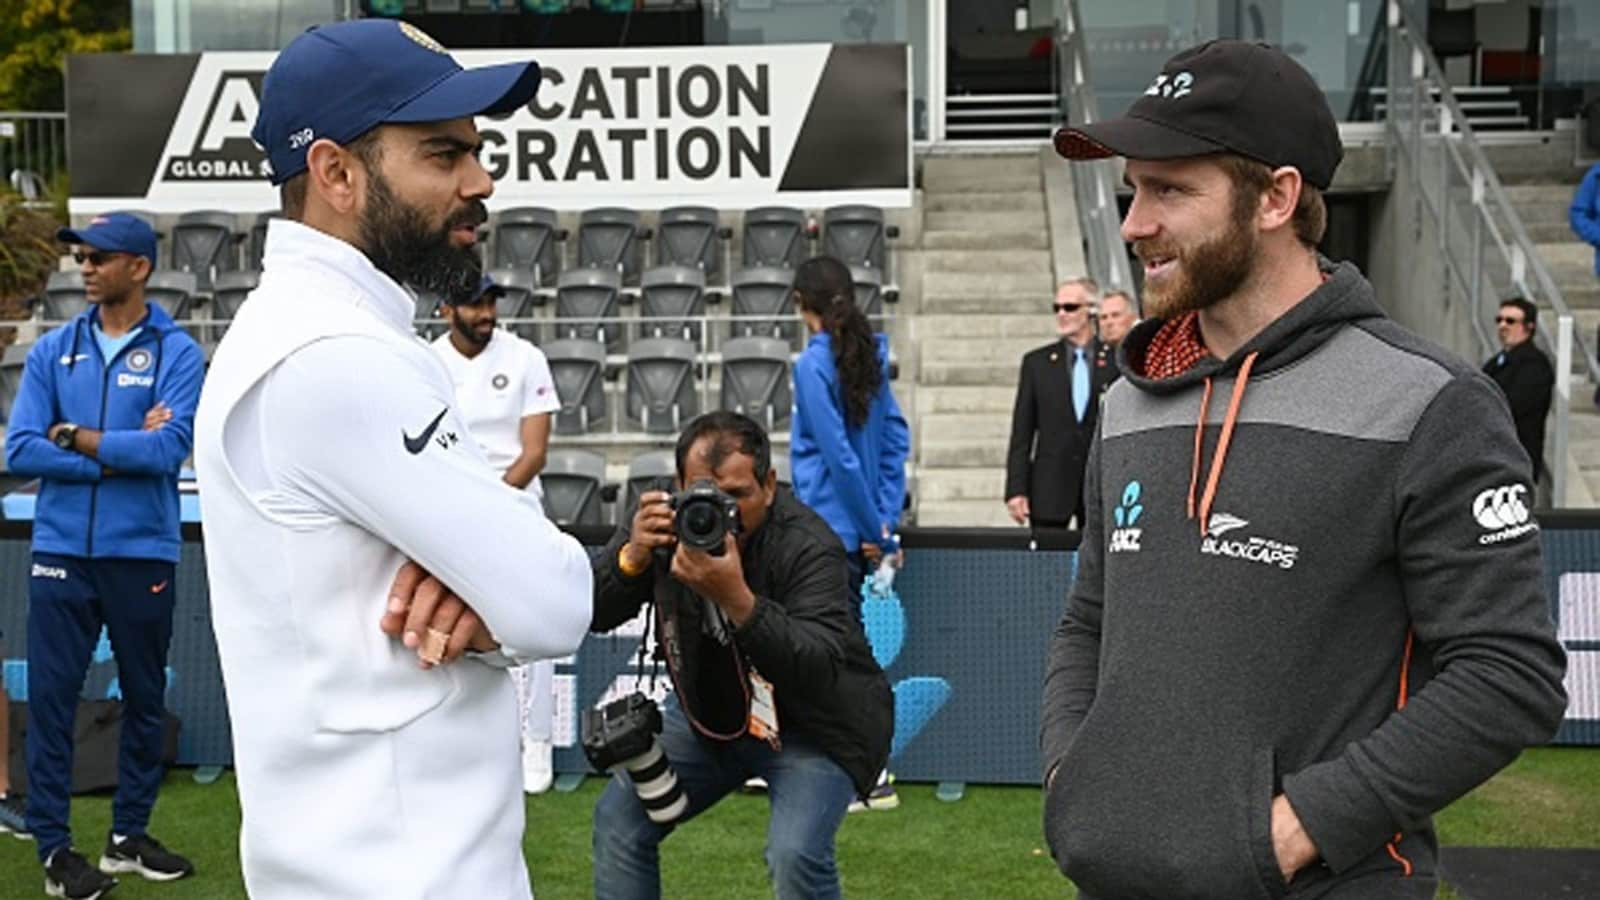 Quite an obvious one for me': Michael Vaughan predicts the winner of India vs New Zealand World Test Championship final | Cricket - Hindustan Times